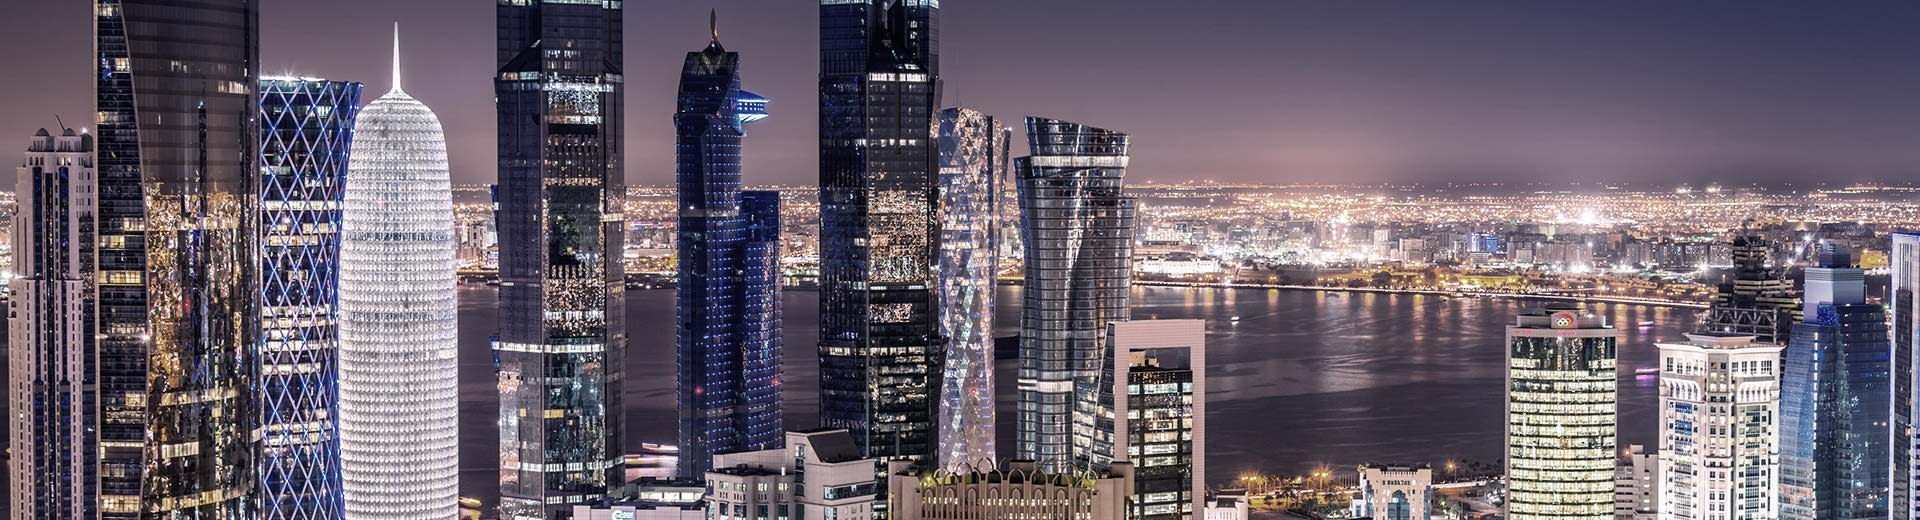 The varied and imposing skyscrapers of Doha pierce the nightsky